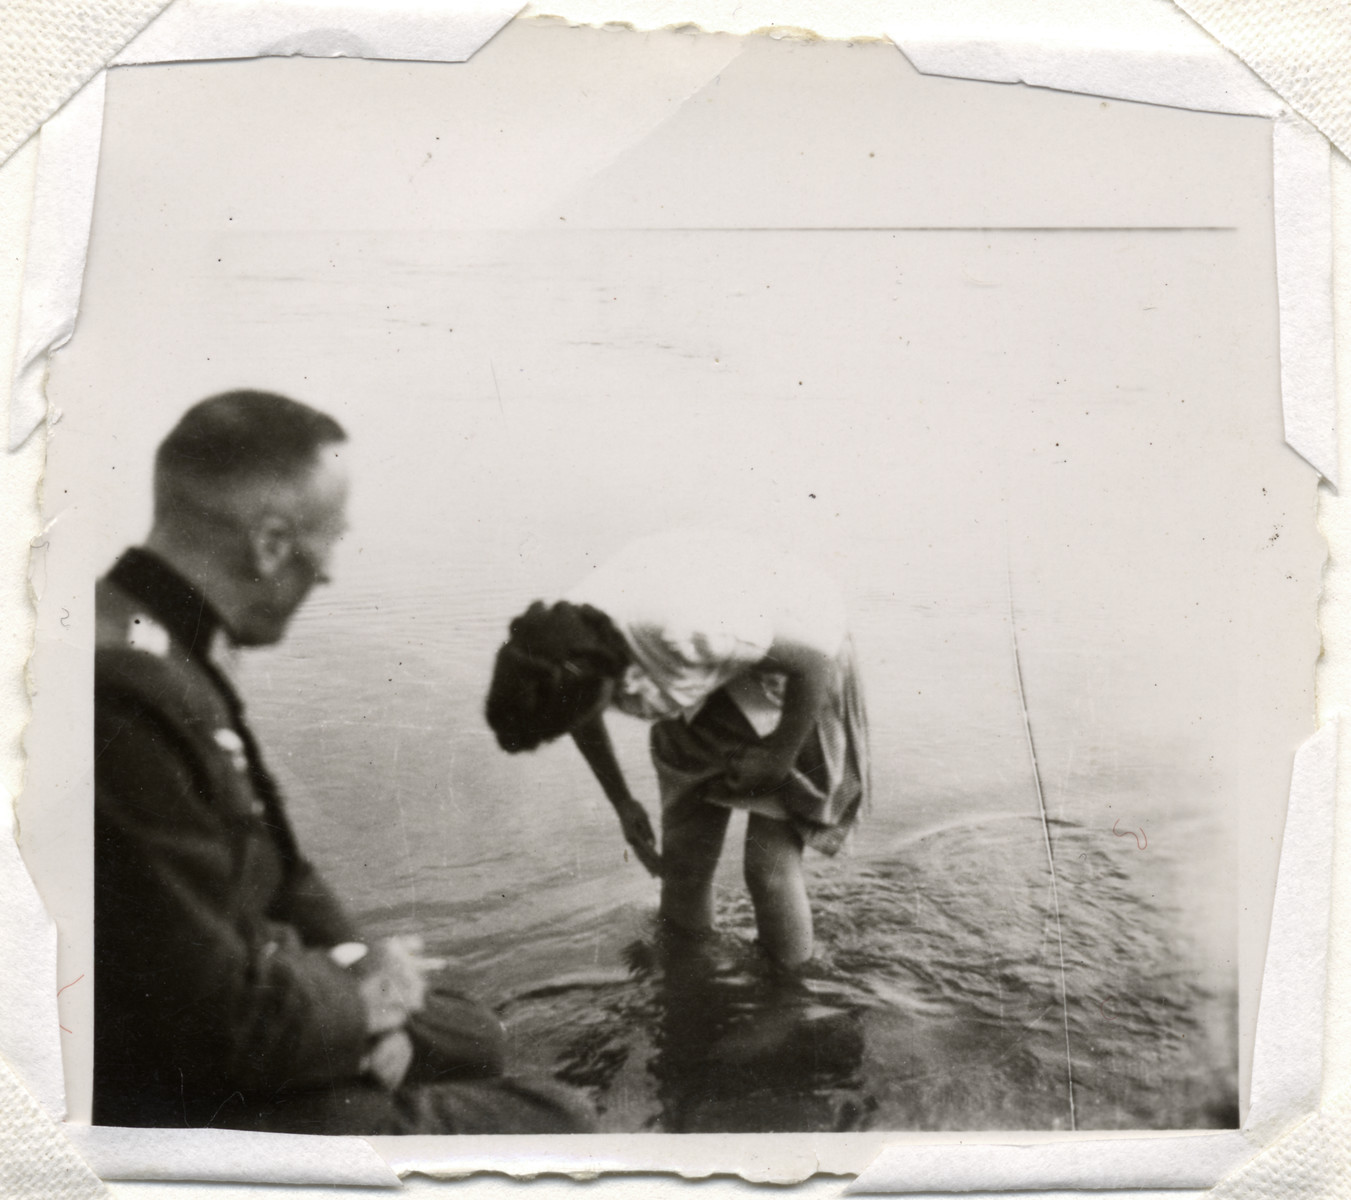 A German soldier observes a woman wading in a lake.